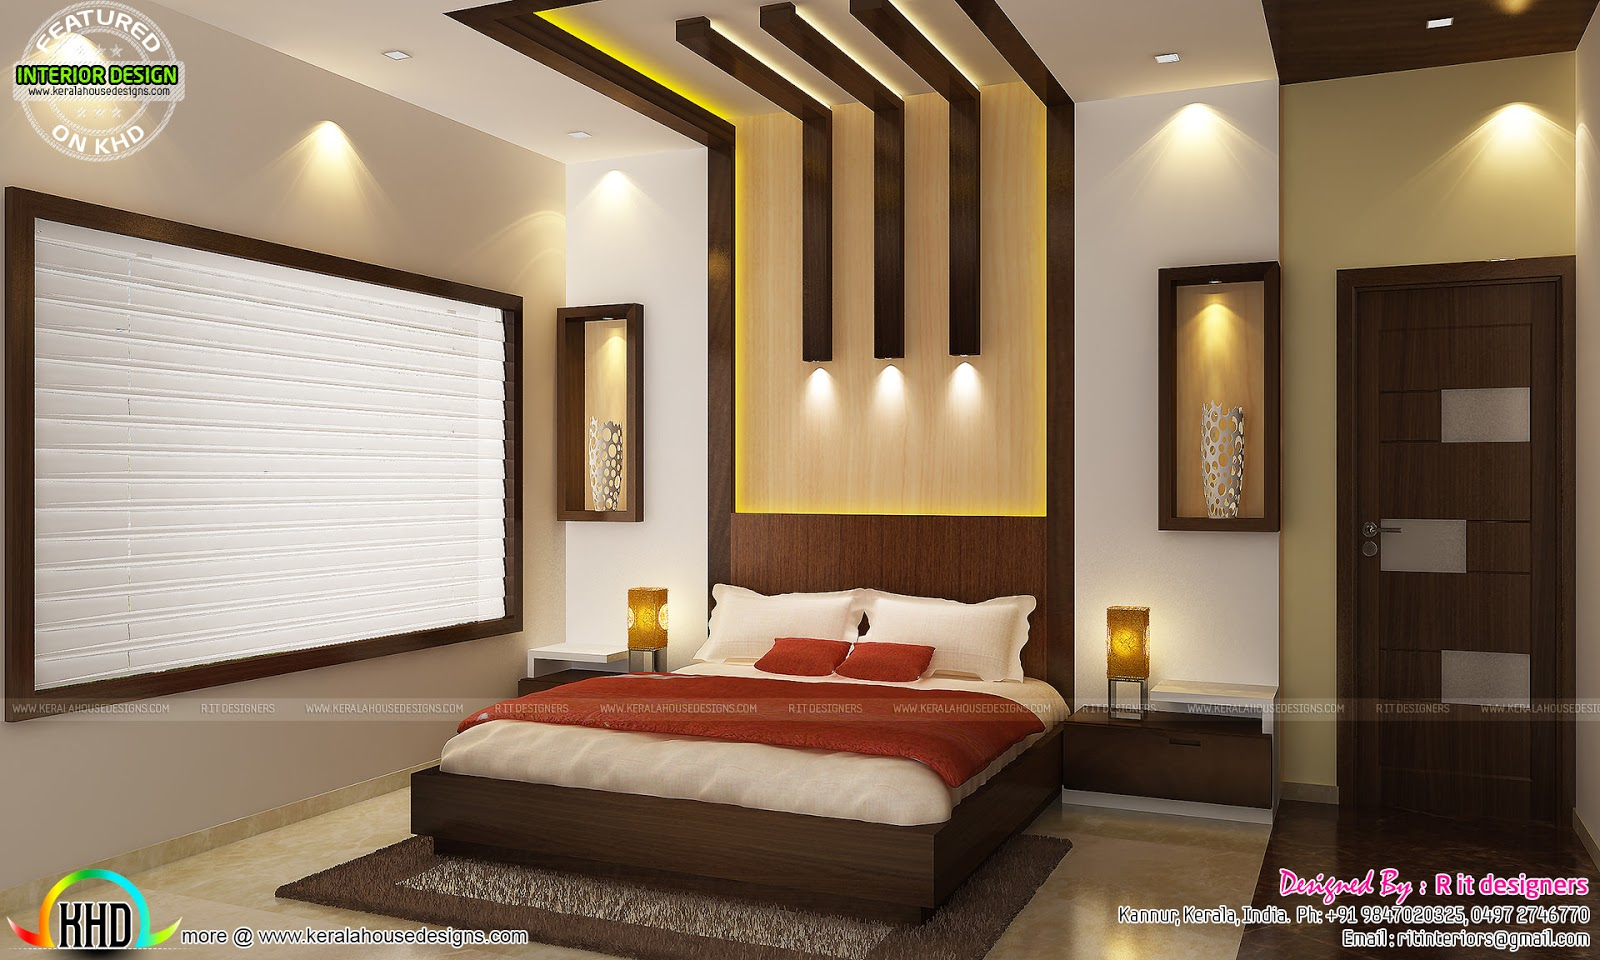 Kitchen living bedroom dining interior decor kerala for Interior decoration bedroom photos